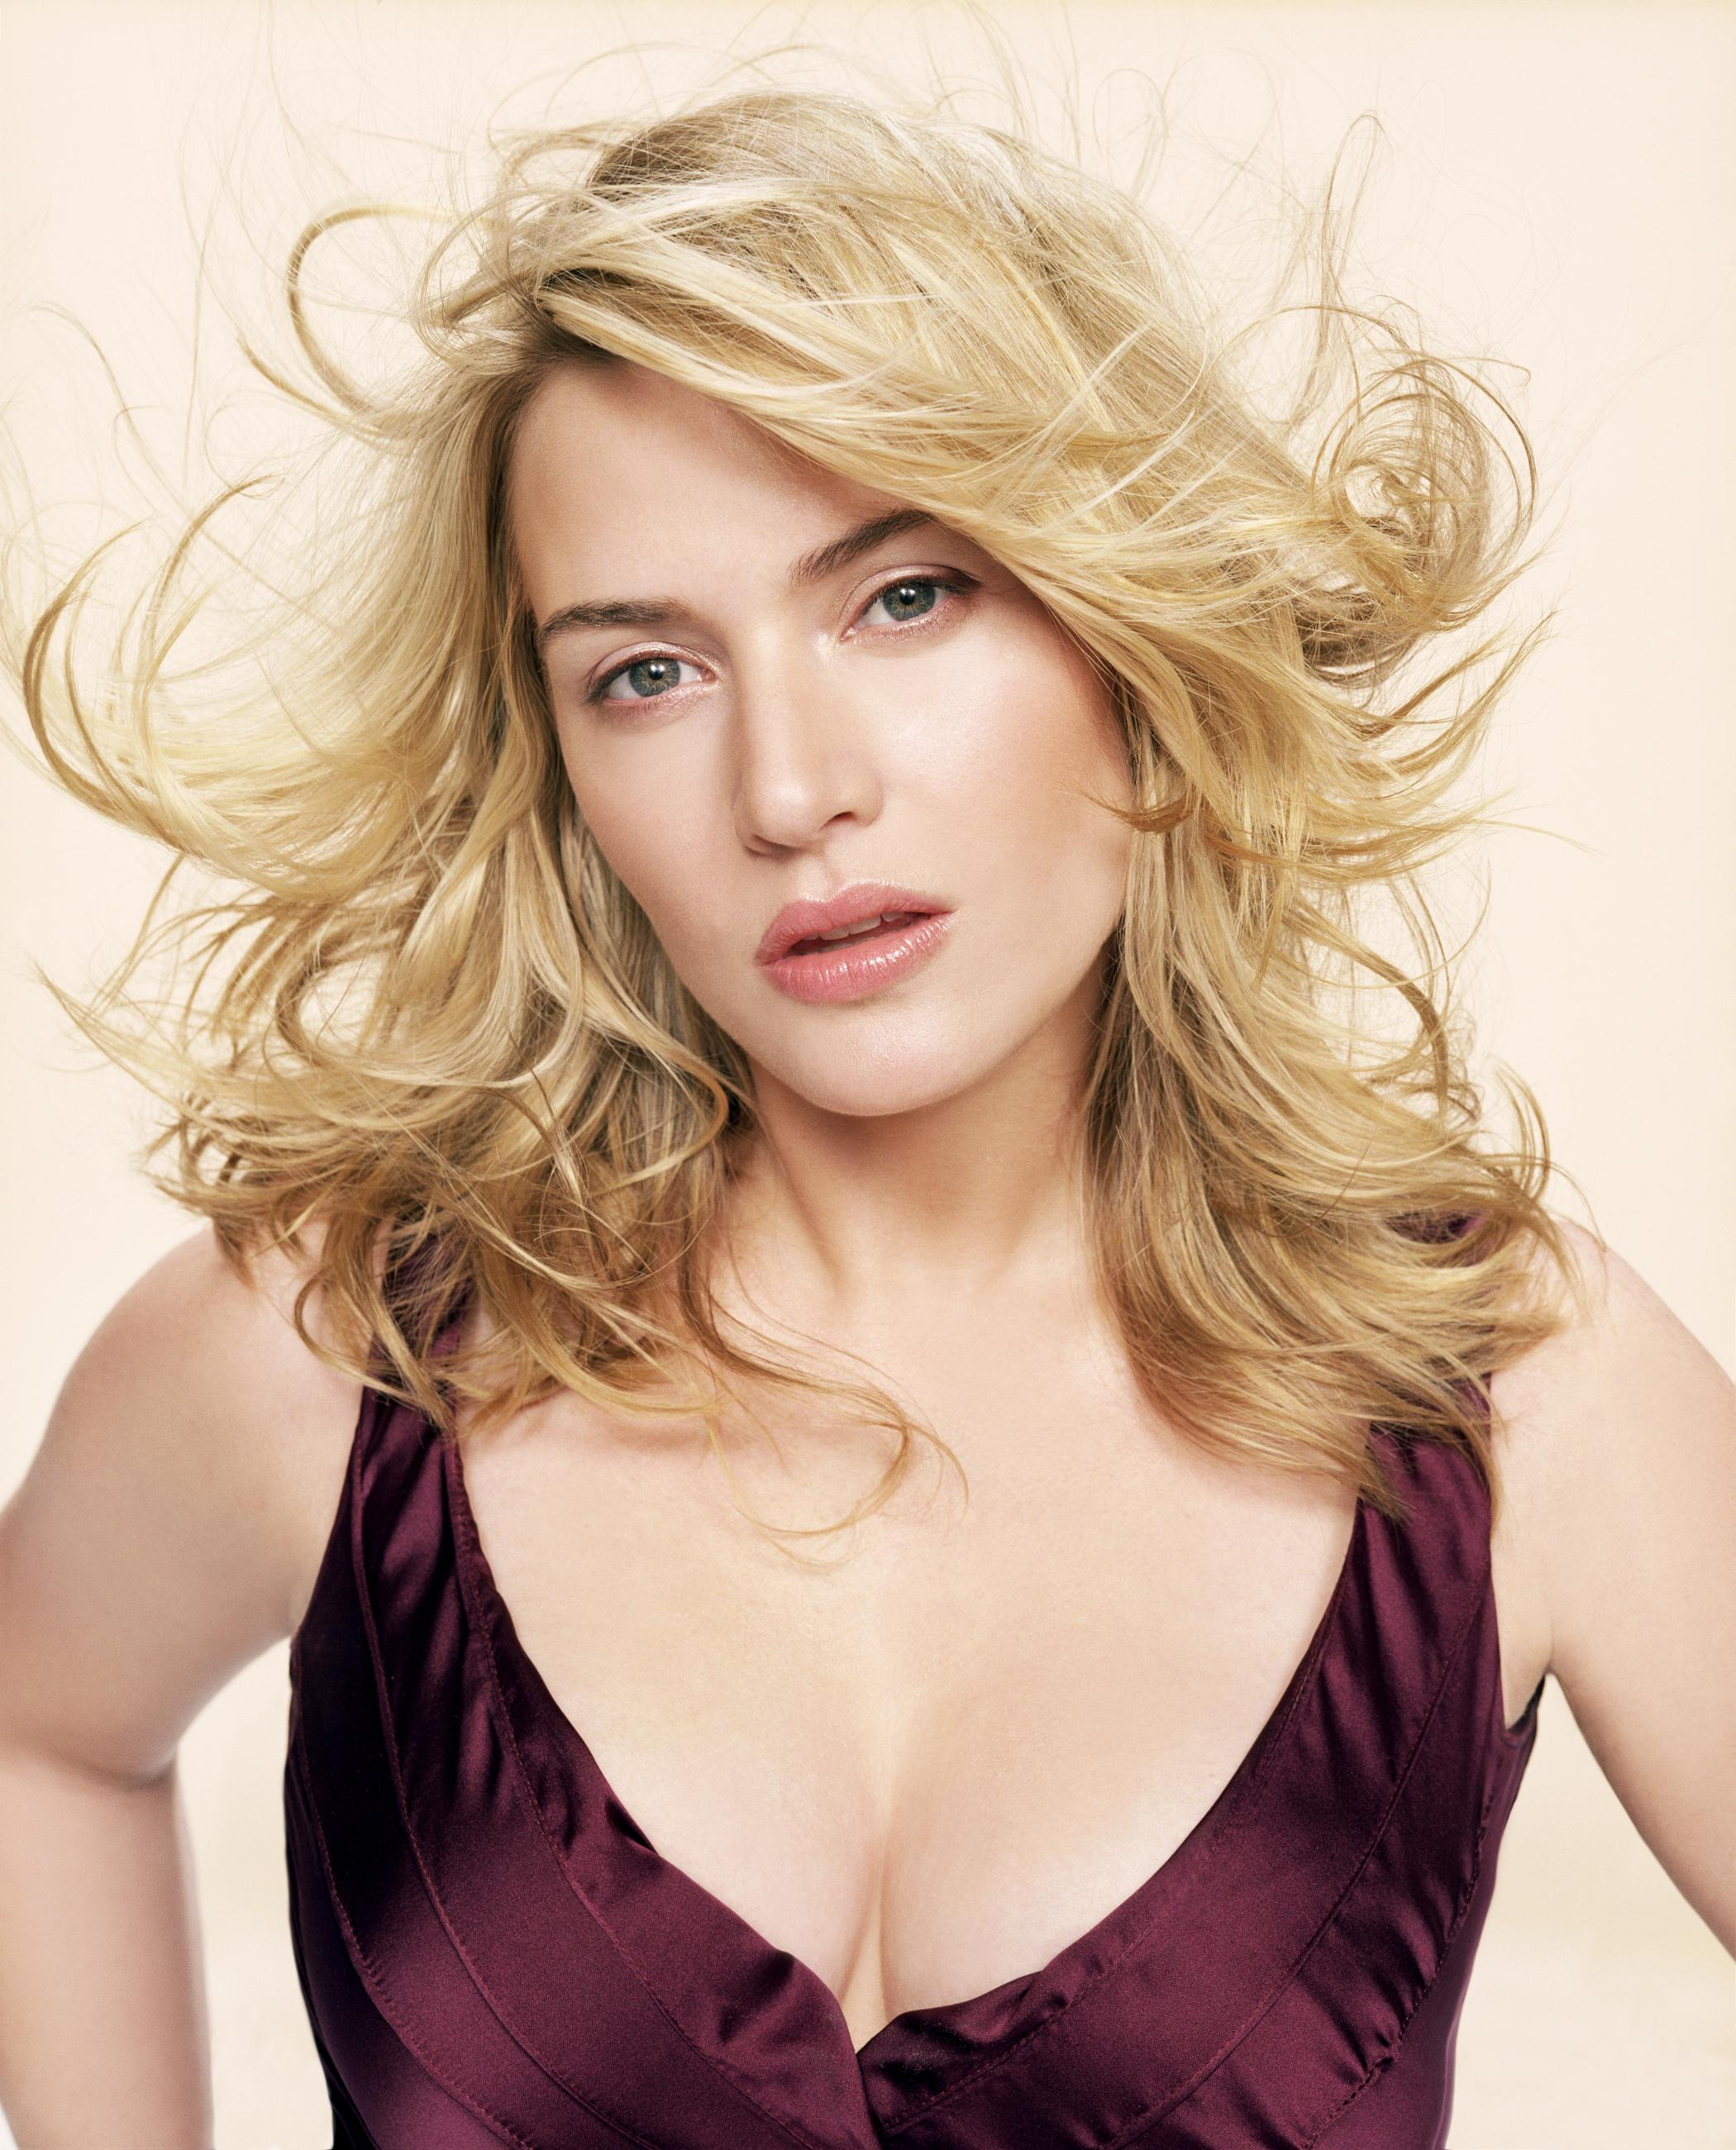 Kate Winslet High Resolution 243.22 Kb